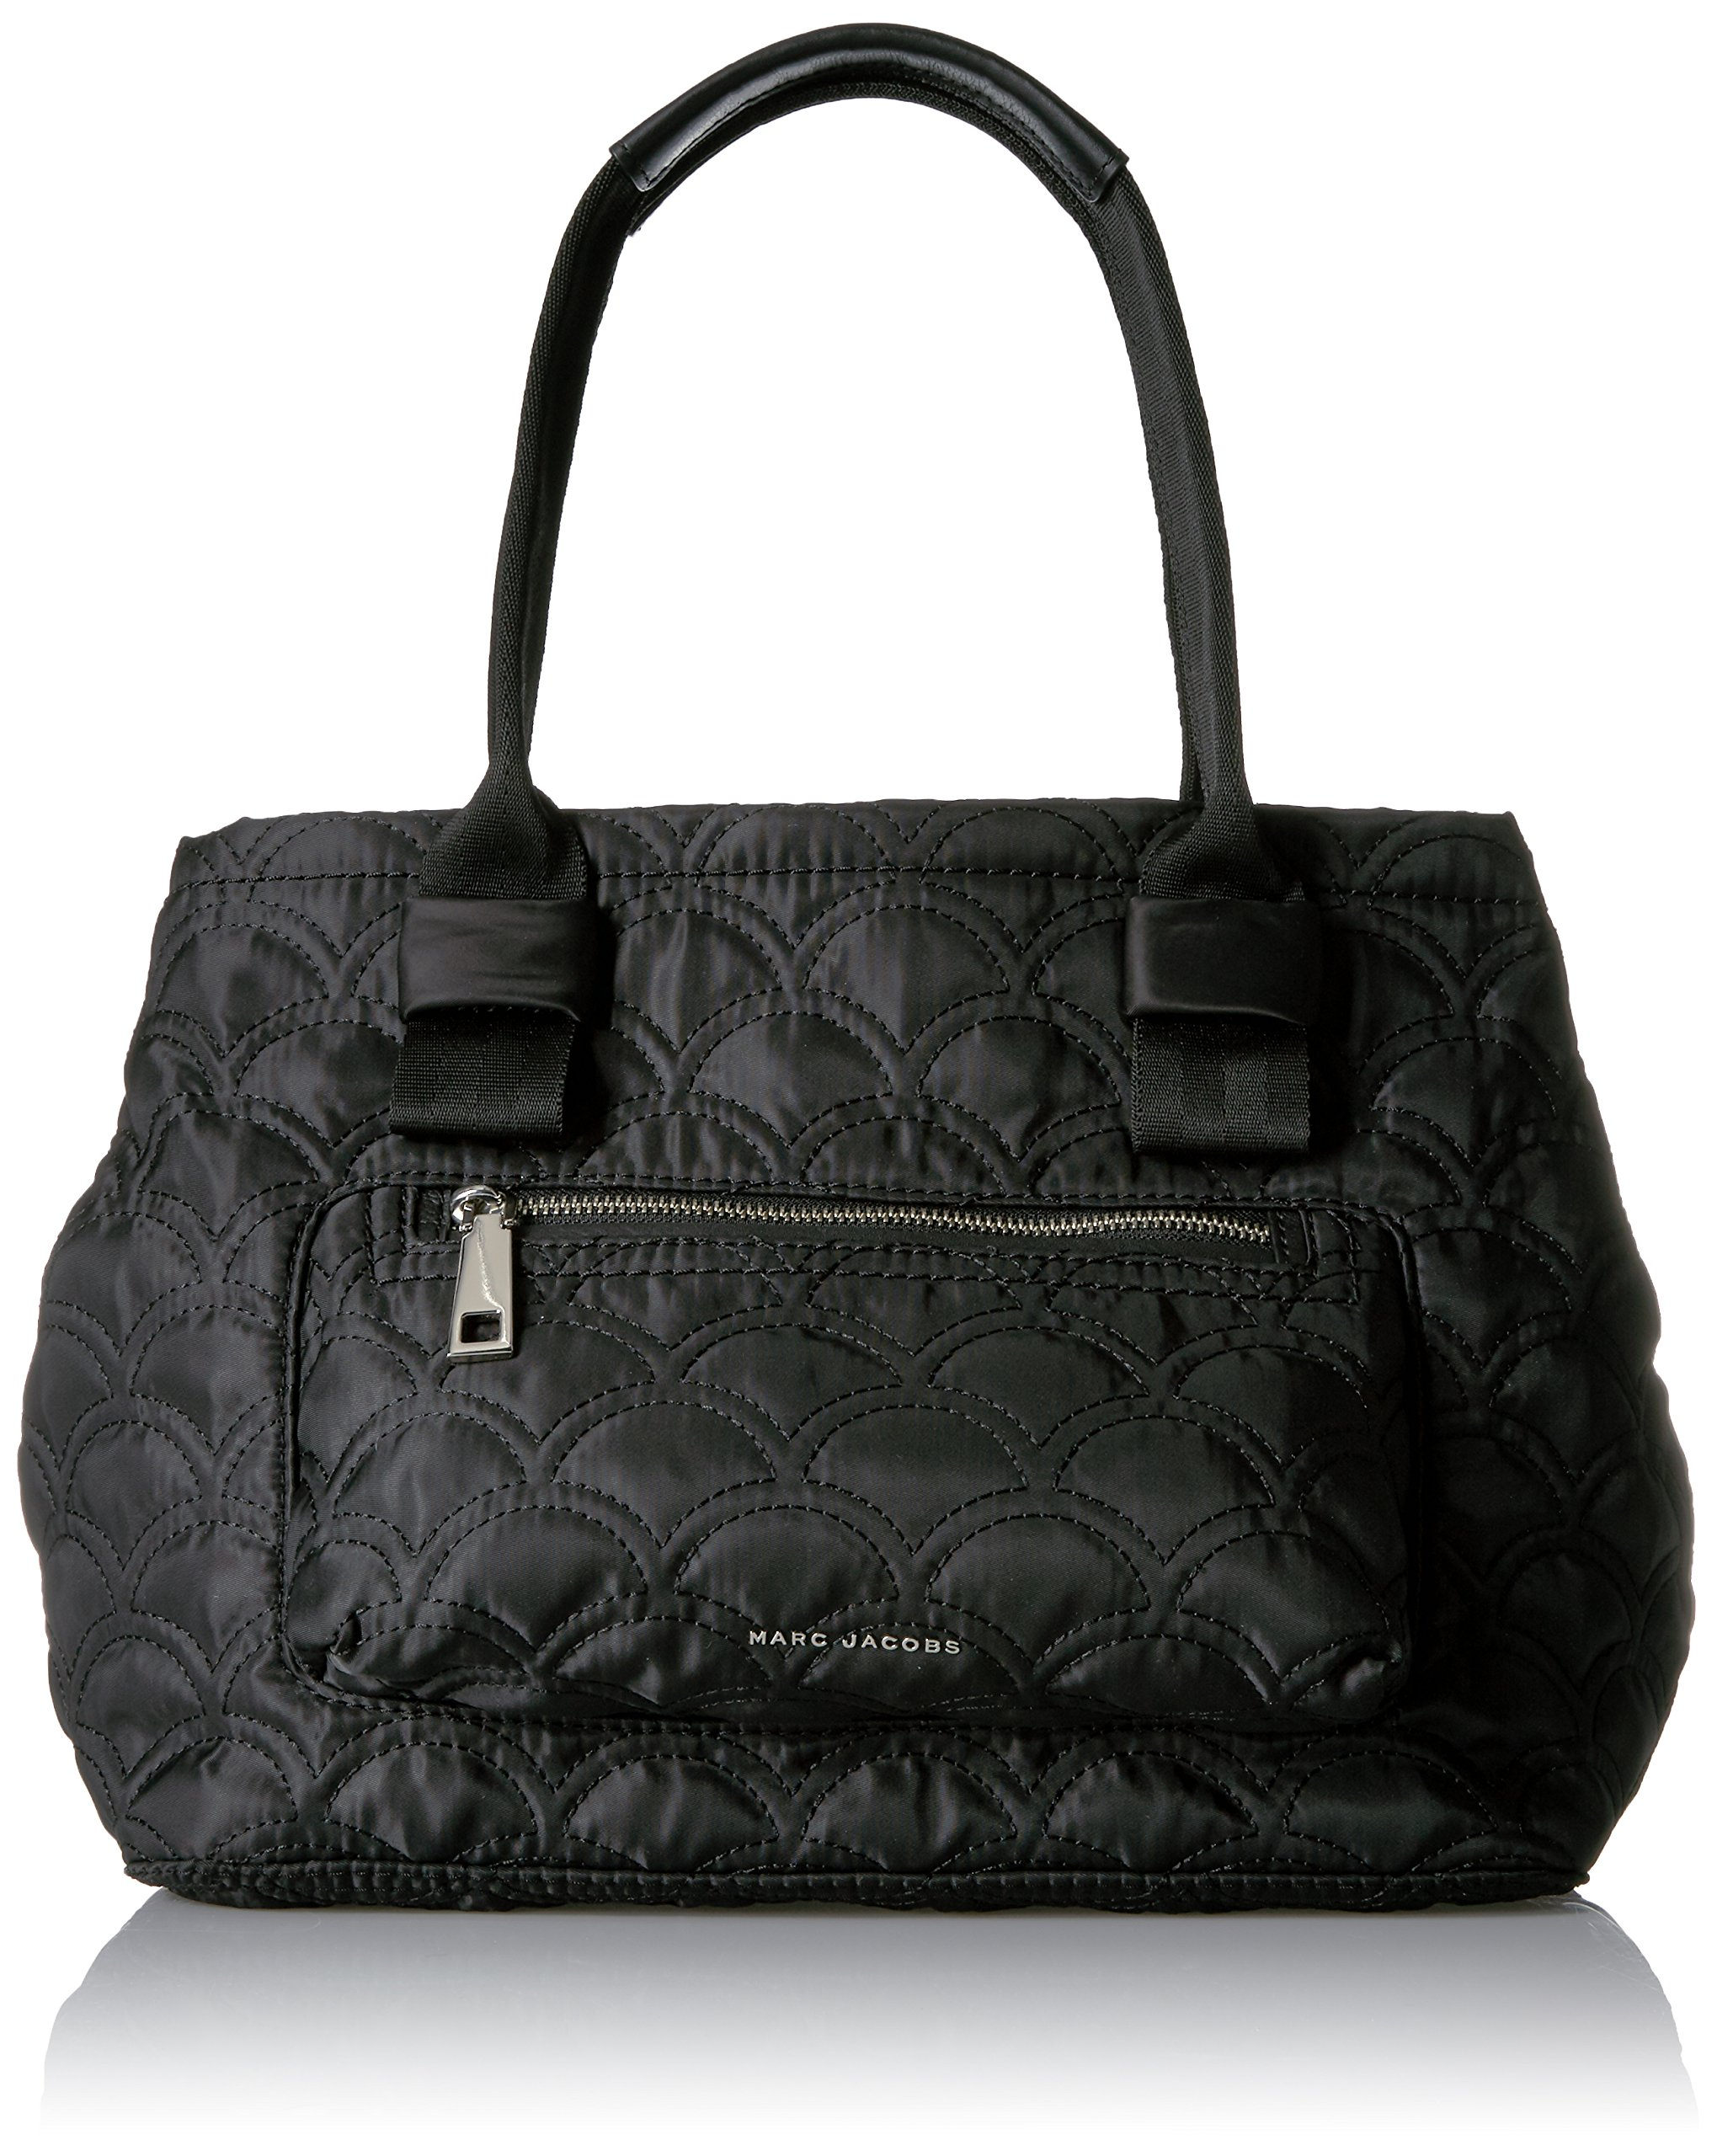 Marc Jacobs Women's Easy Matelasse Tote, Black by Marc Jacobs